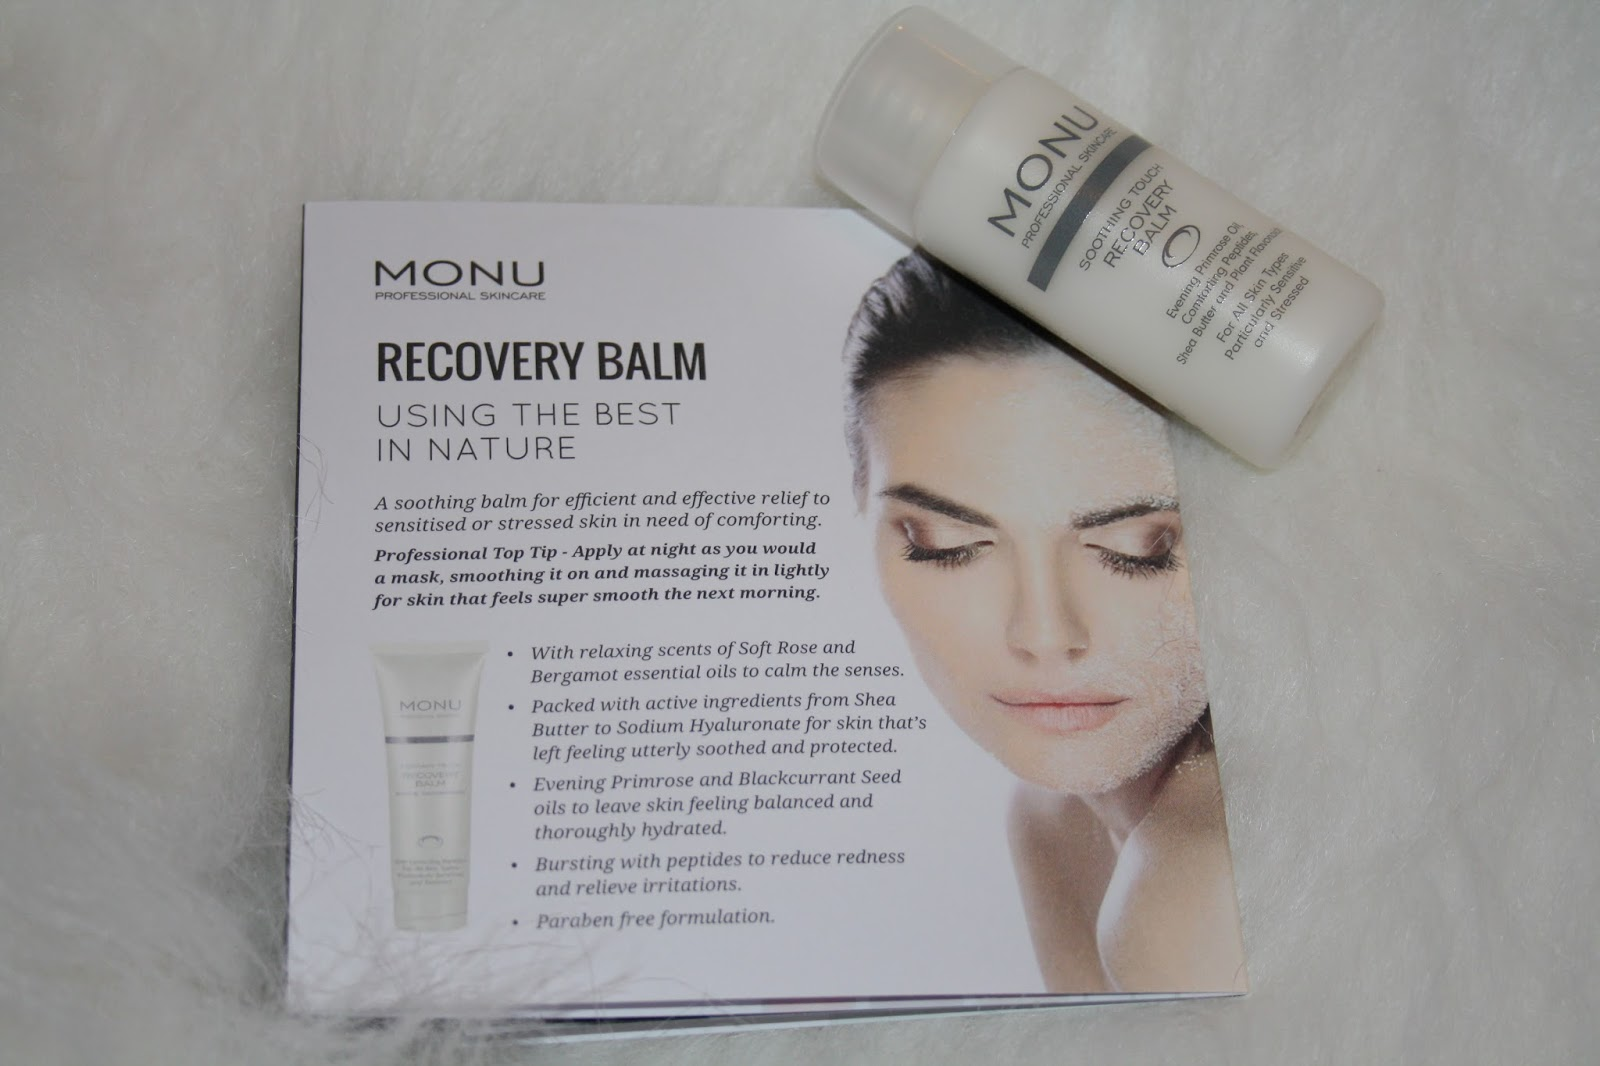 Look Fantastic November Beauty Box - Monu